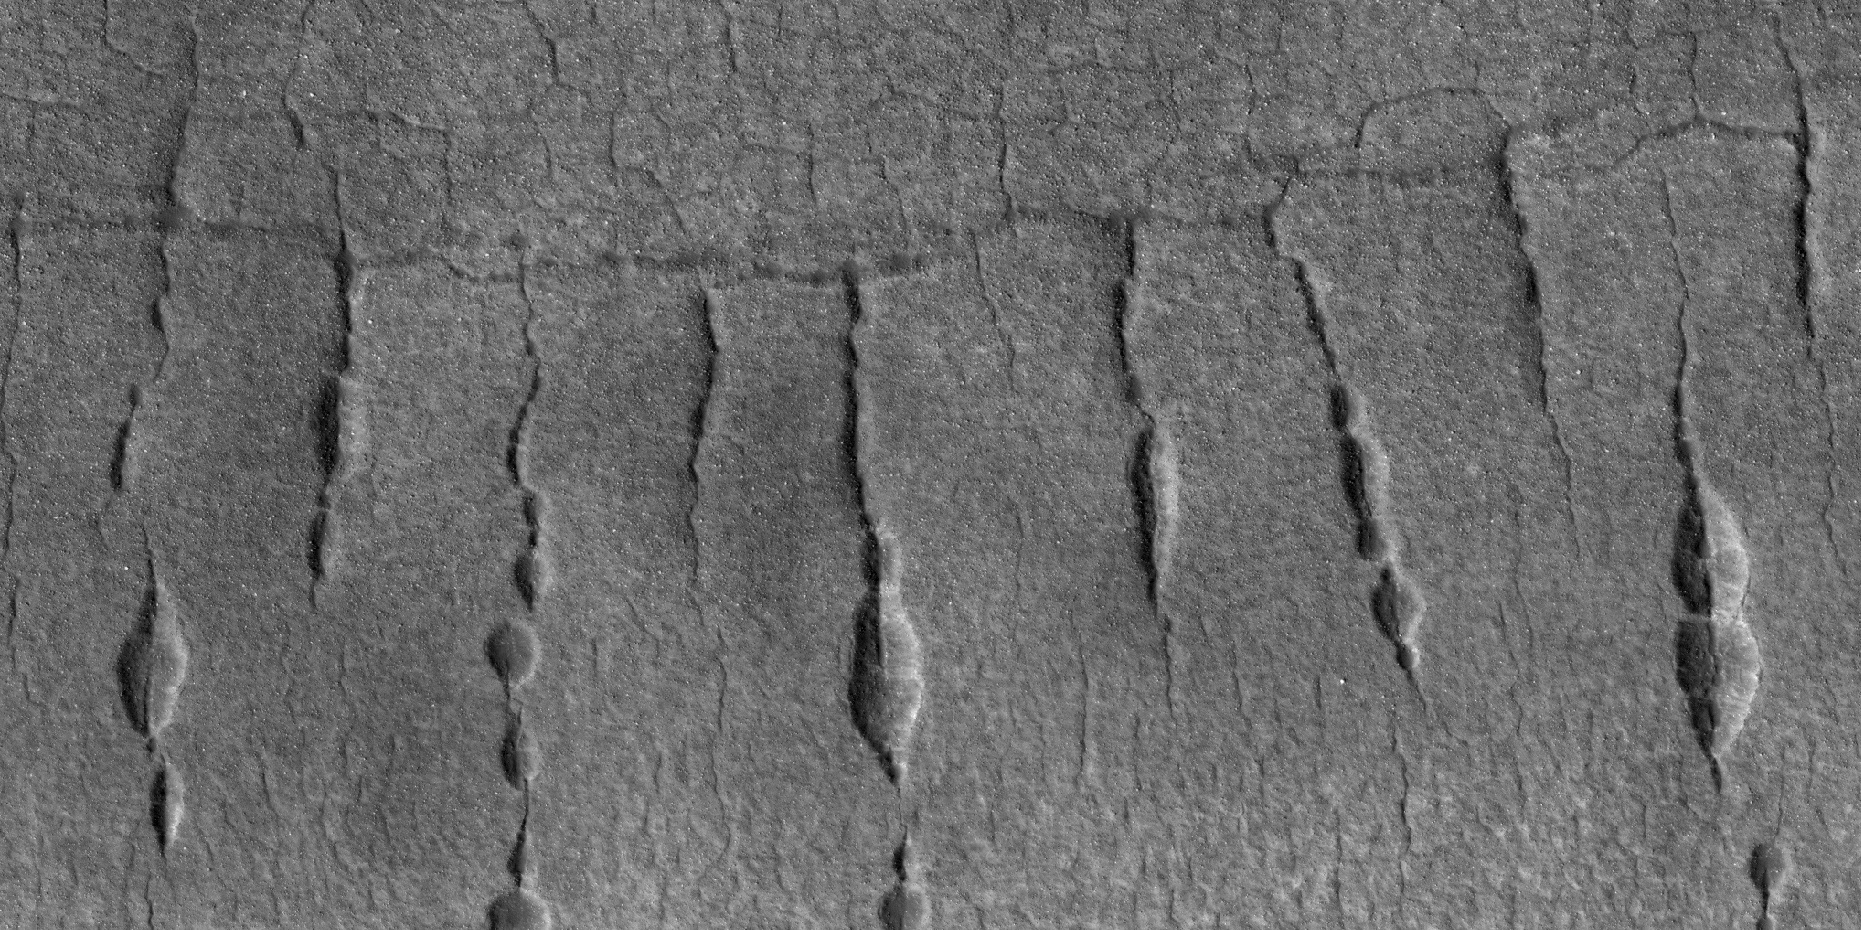 Close view of lines of pits, as seen by HiRISE under HiWish program